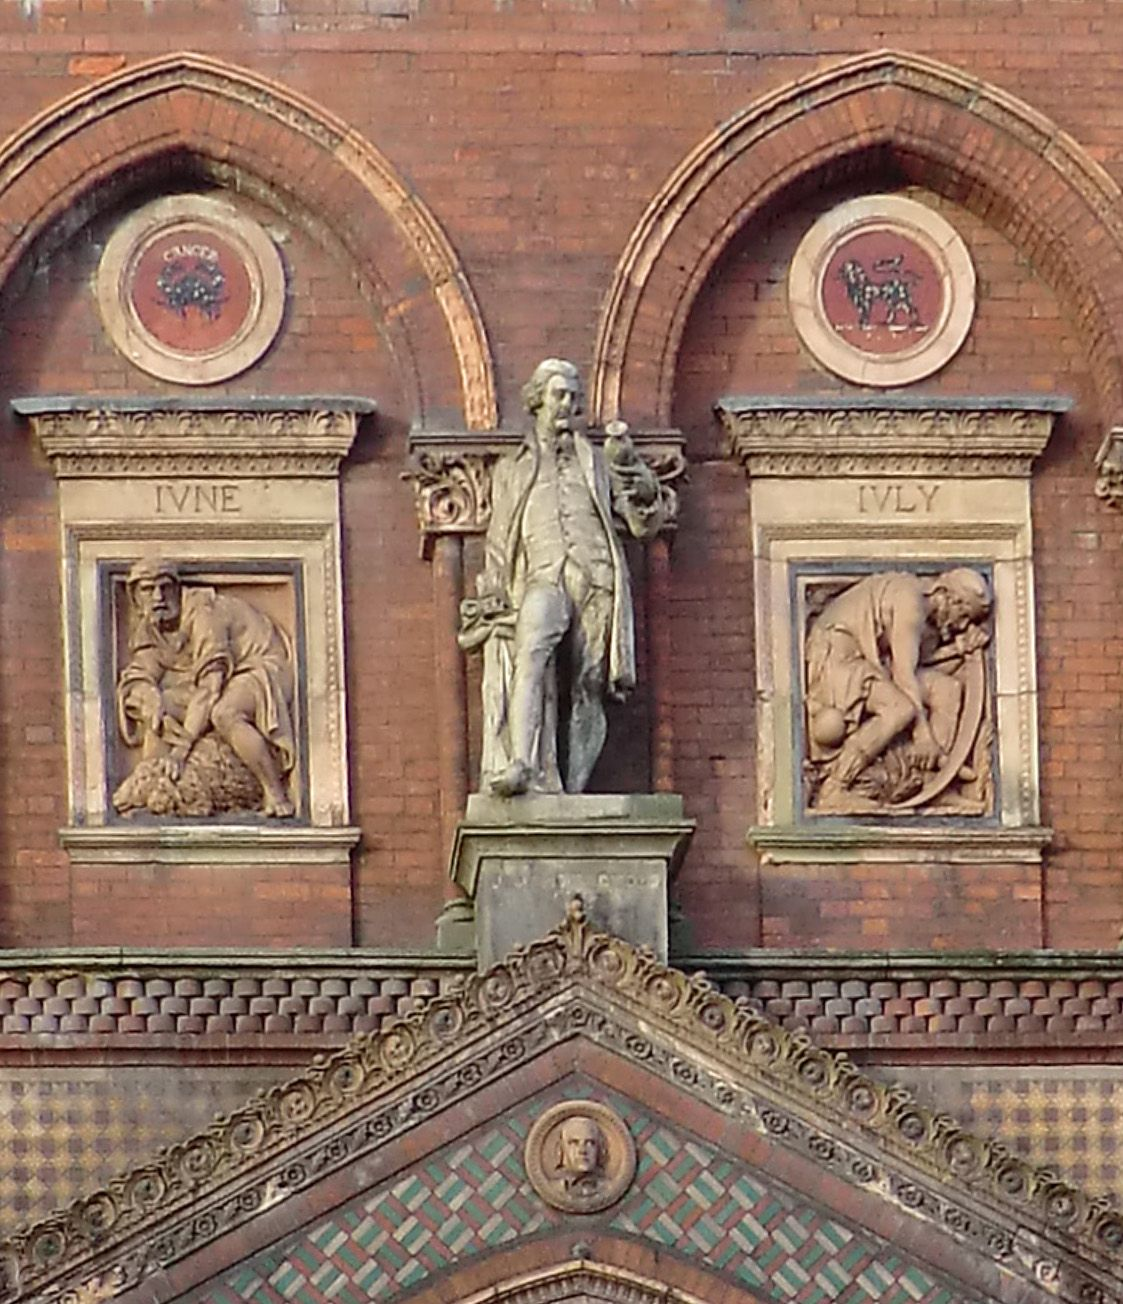 The Wedgwood Institute In Burslem. The Victorian Society